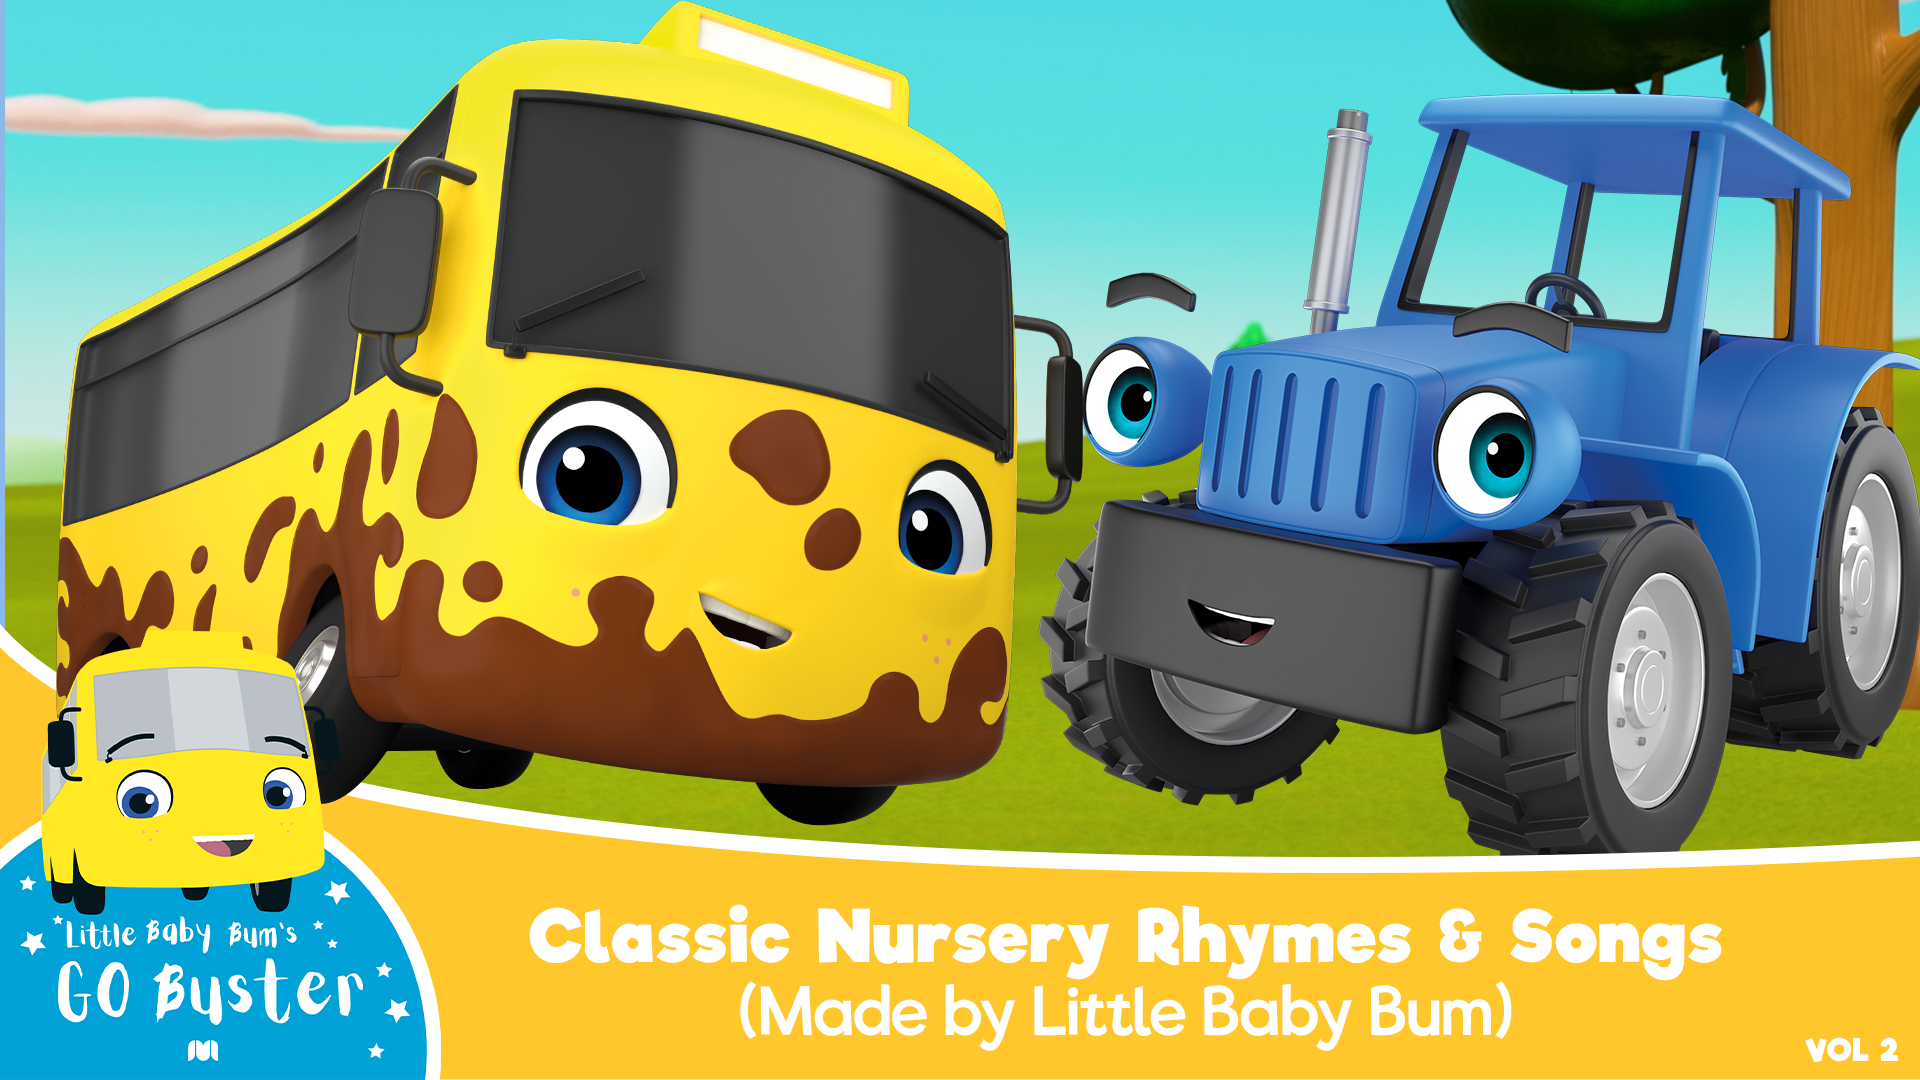 Go Buster - Classic Nursery Rhymes & Songs (Made by Little Baby Bum) - Season 2